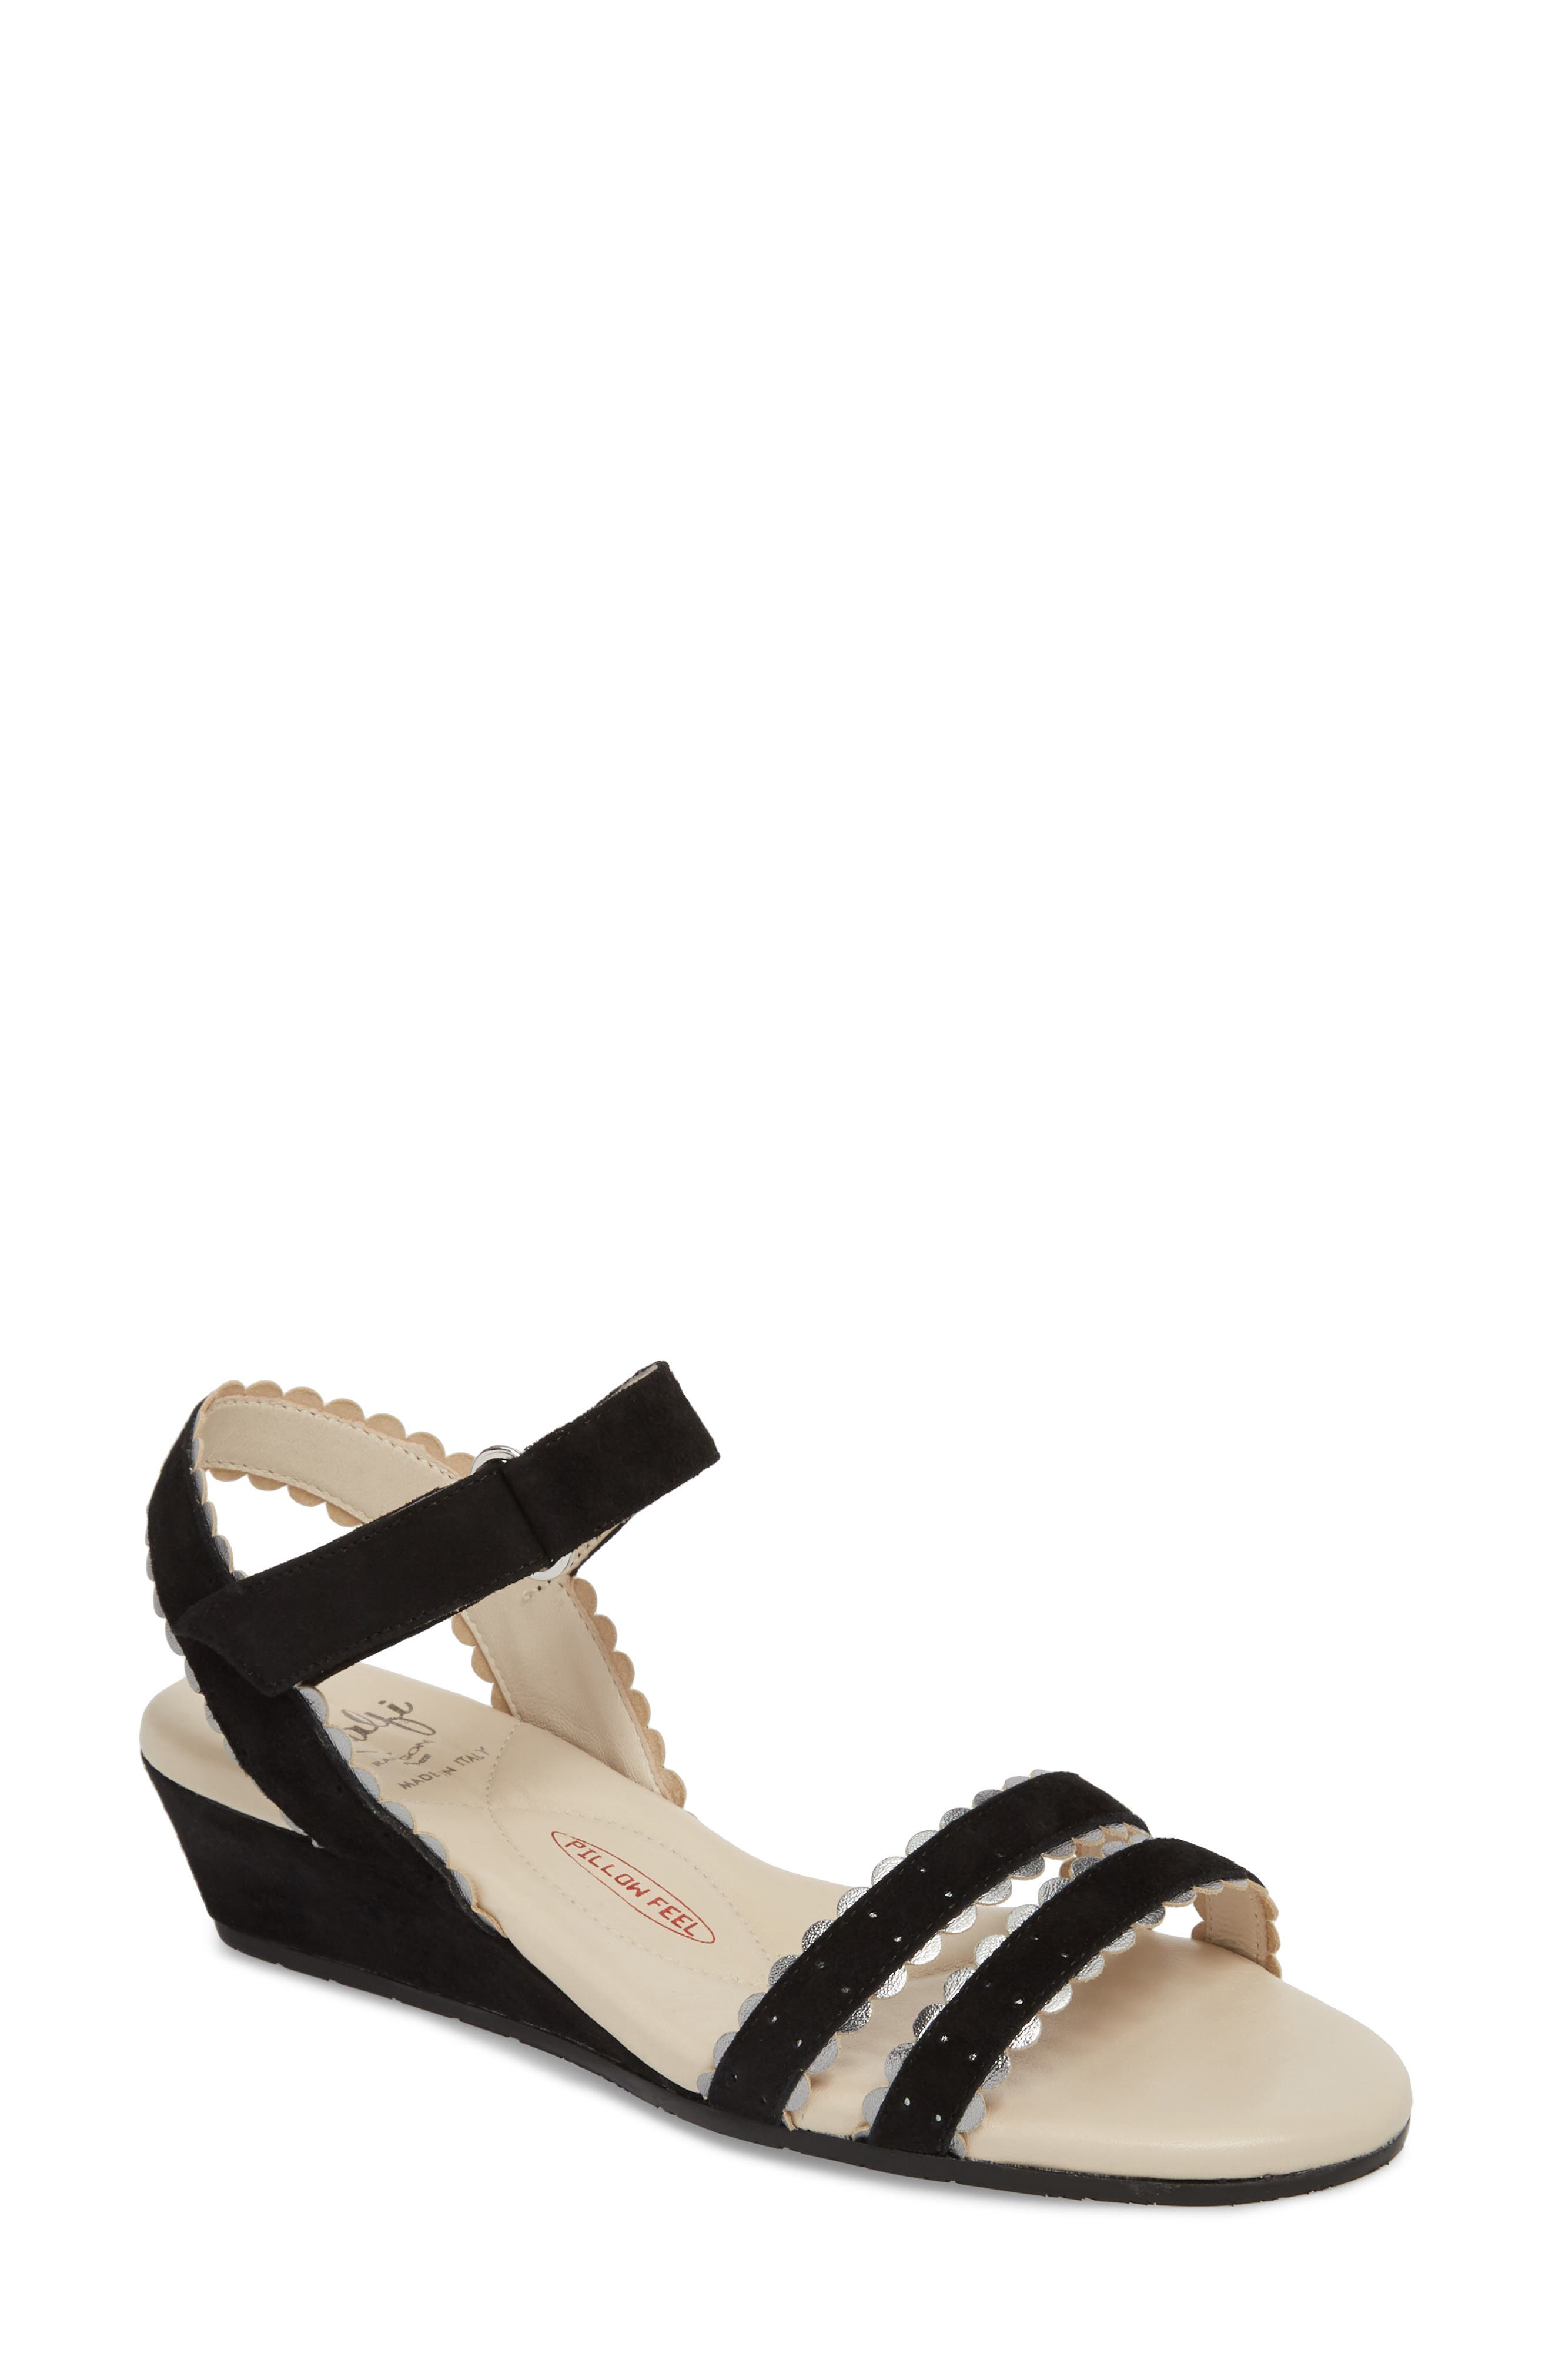 Messina Wedge Sandal,                         Main,                         color, BLACK SUEDE